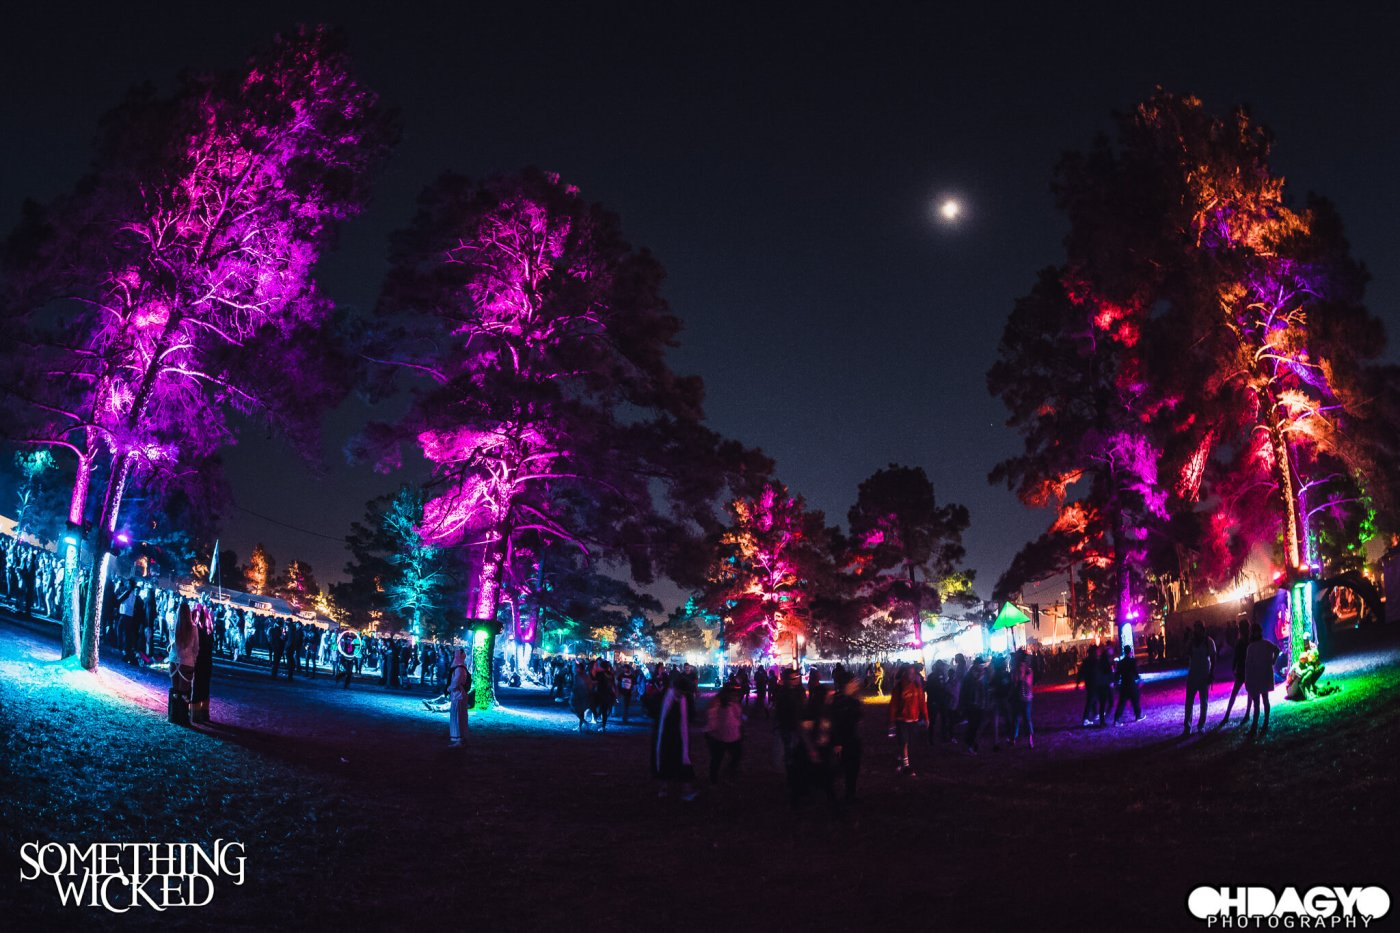 6e6a4f7d-2017-1029-somethingwicked-houston-samhoustonracepark-ohdagyo-processed-045